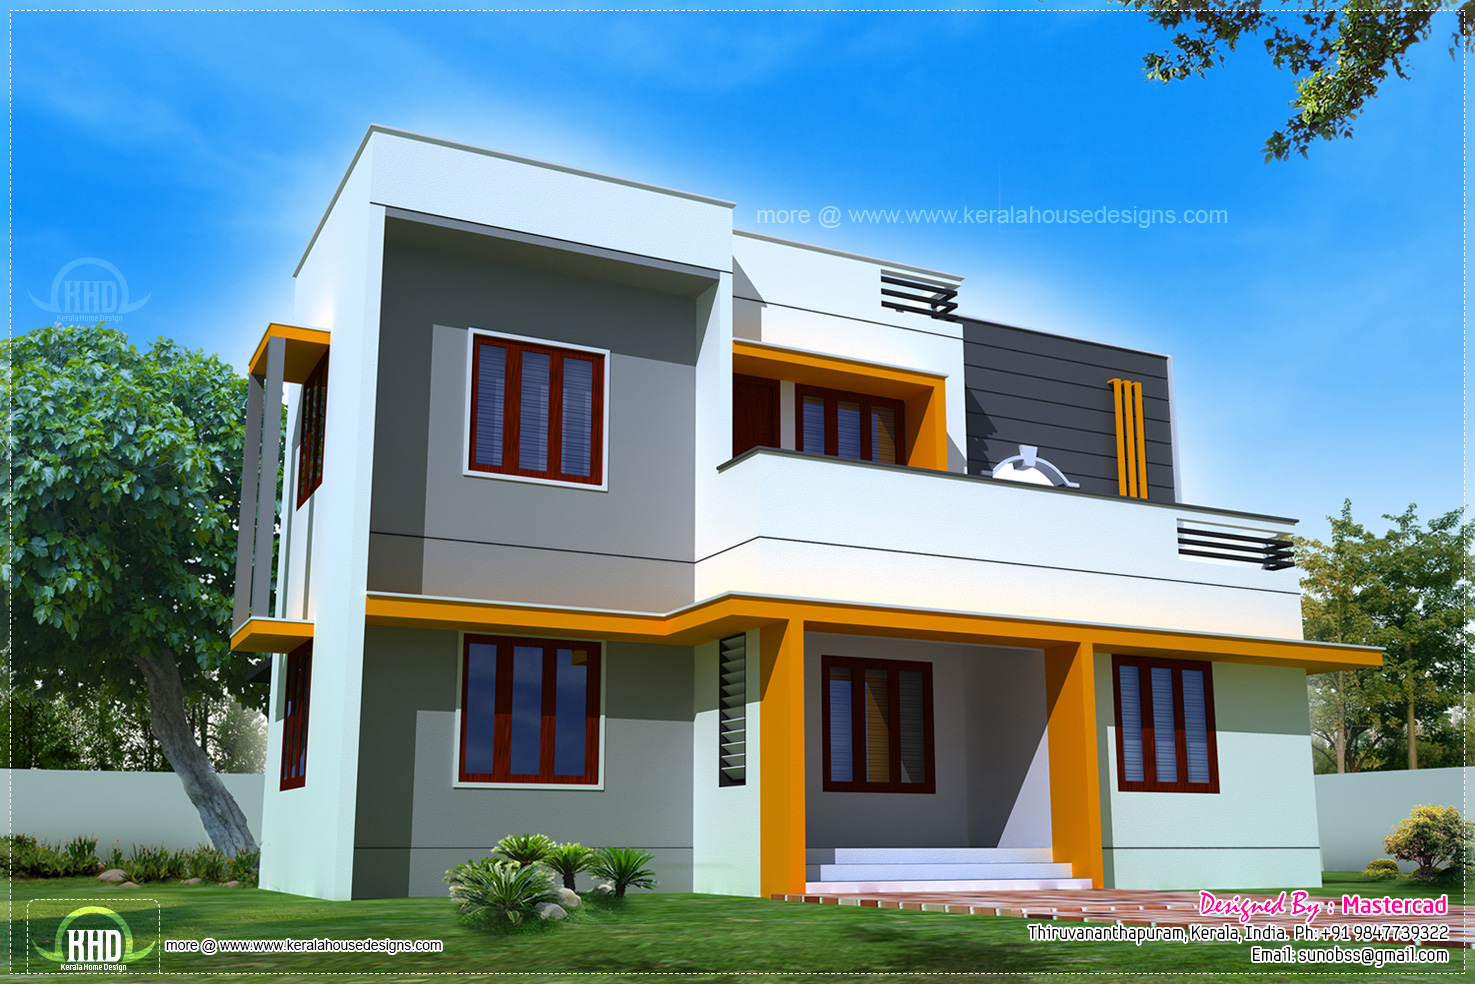 April 2013 kerala home design and floor plans Modern residence